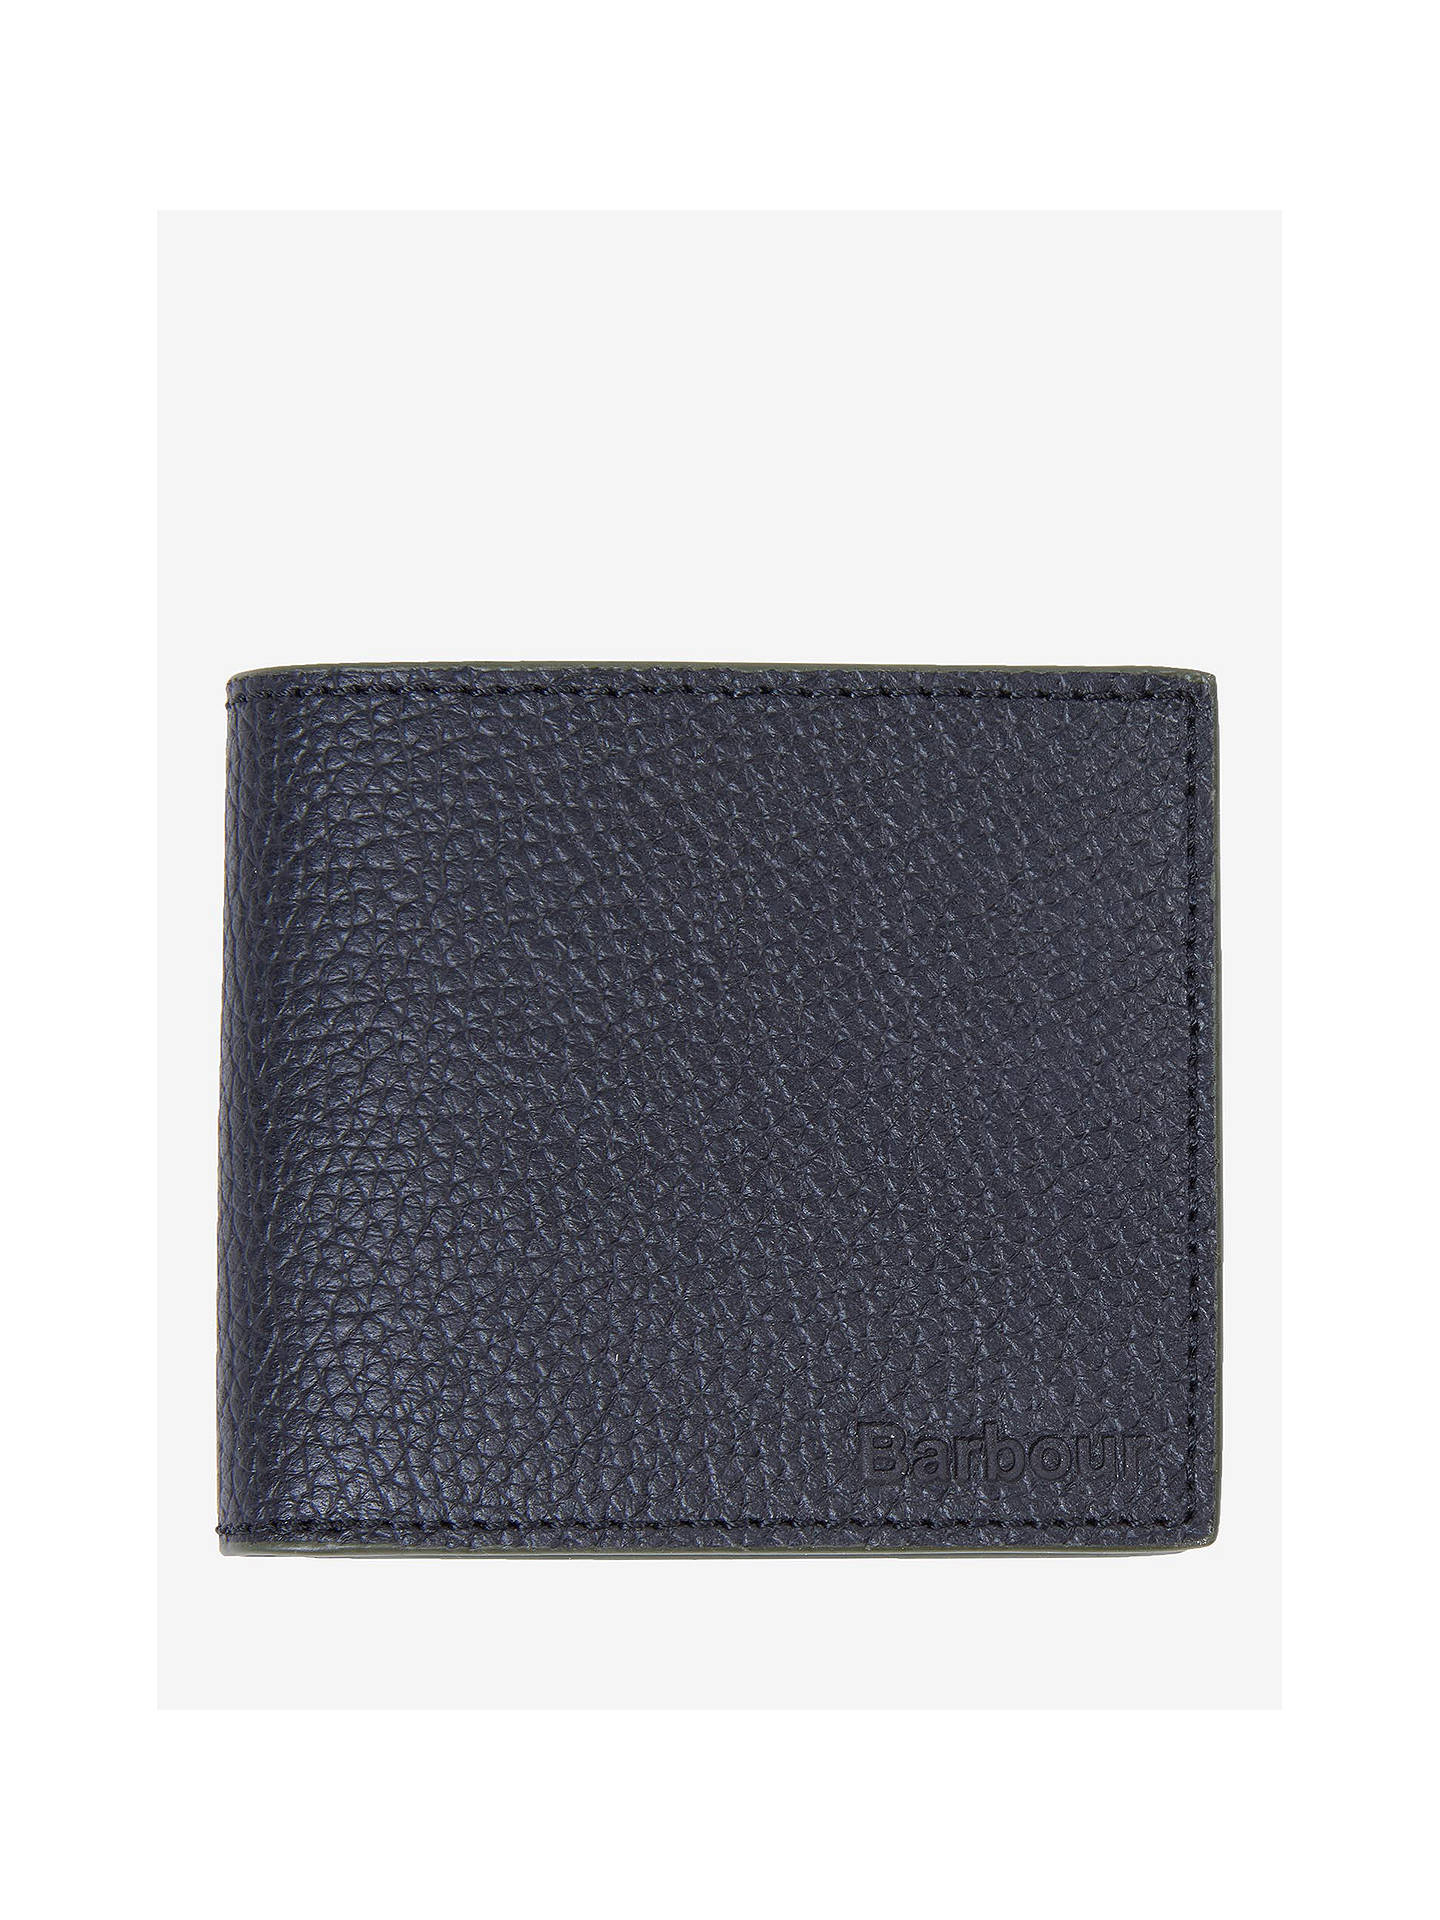 527bc272 Buy Barbour Grain Leather Coin Wallet, Black Online at johnlewis.com ...